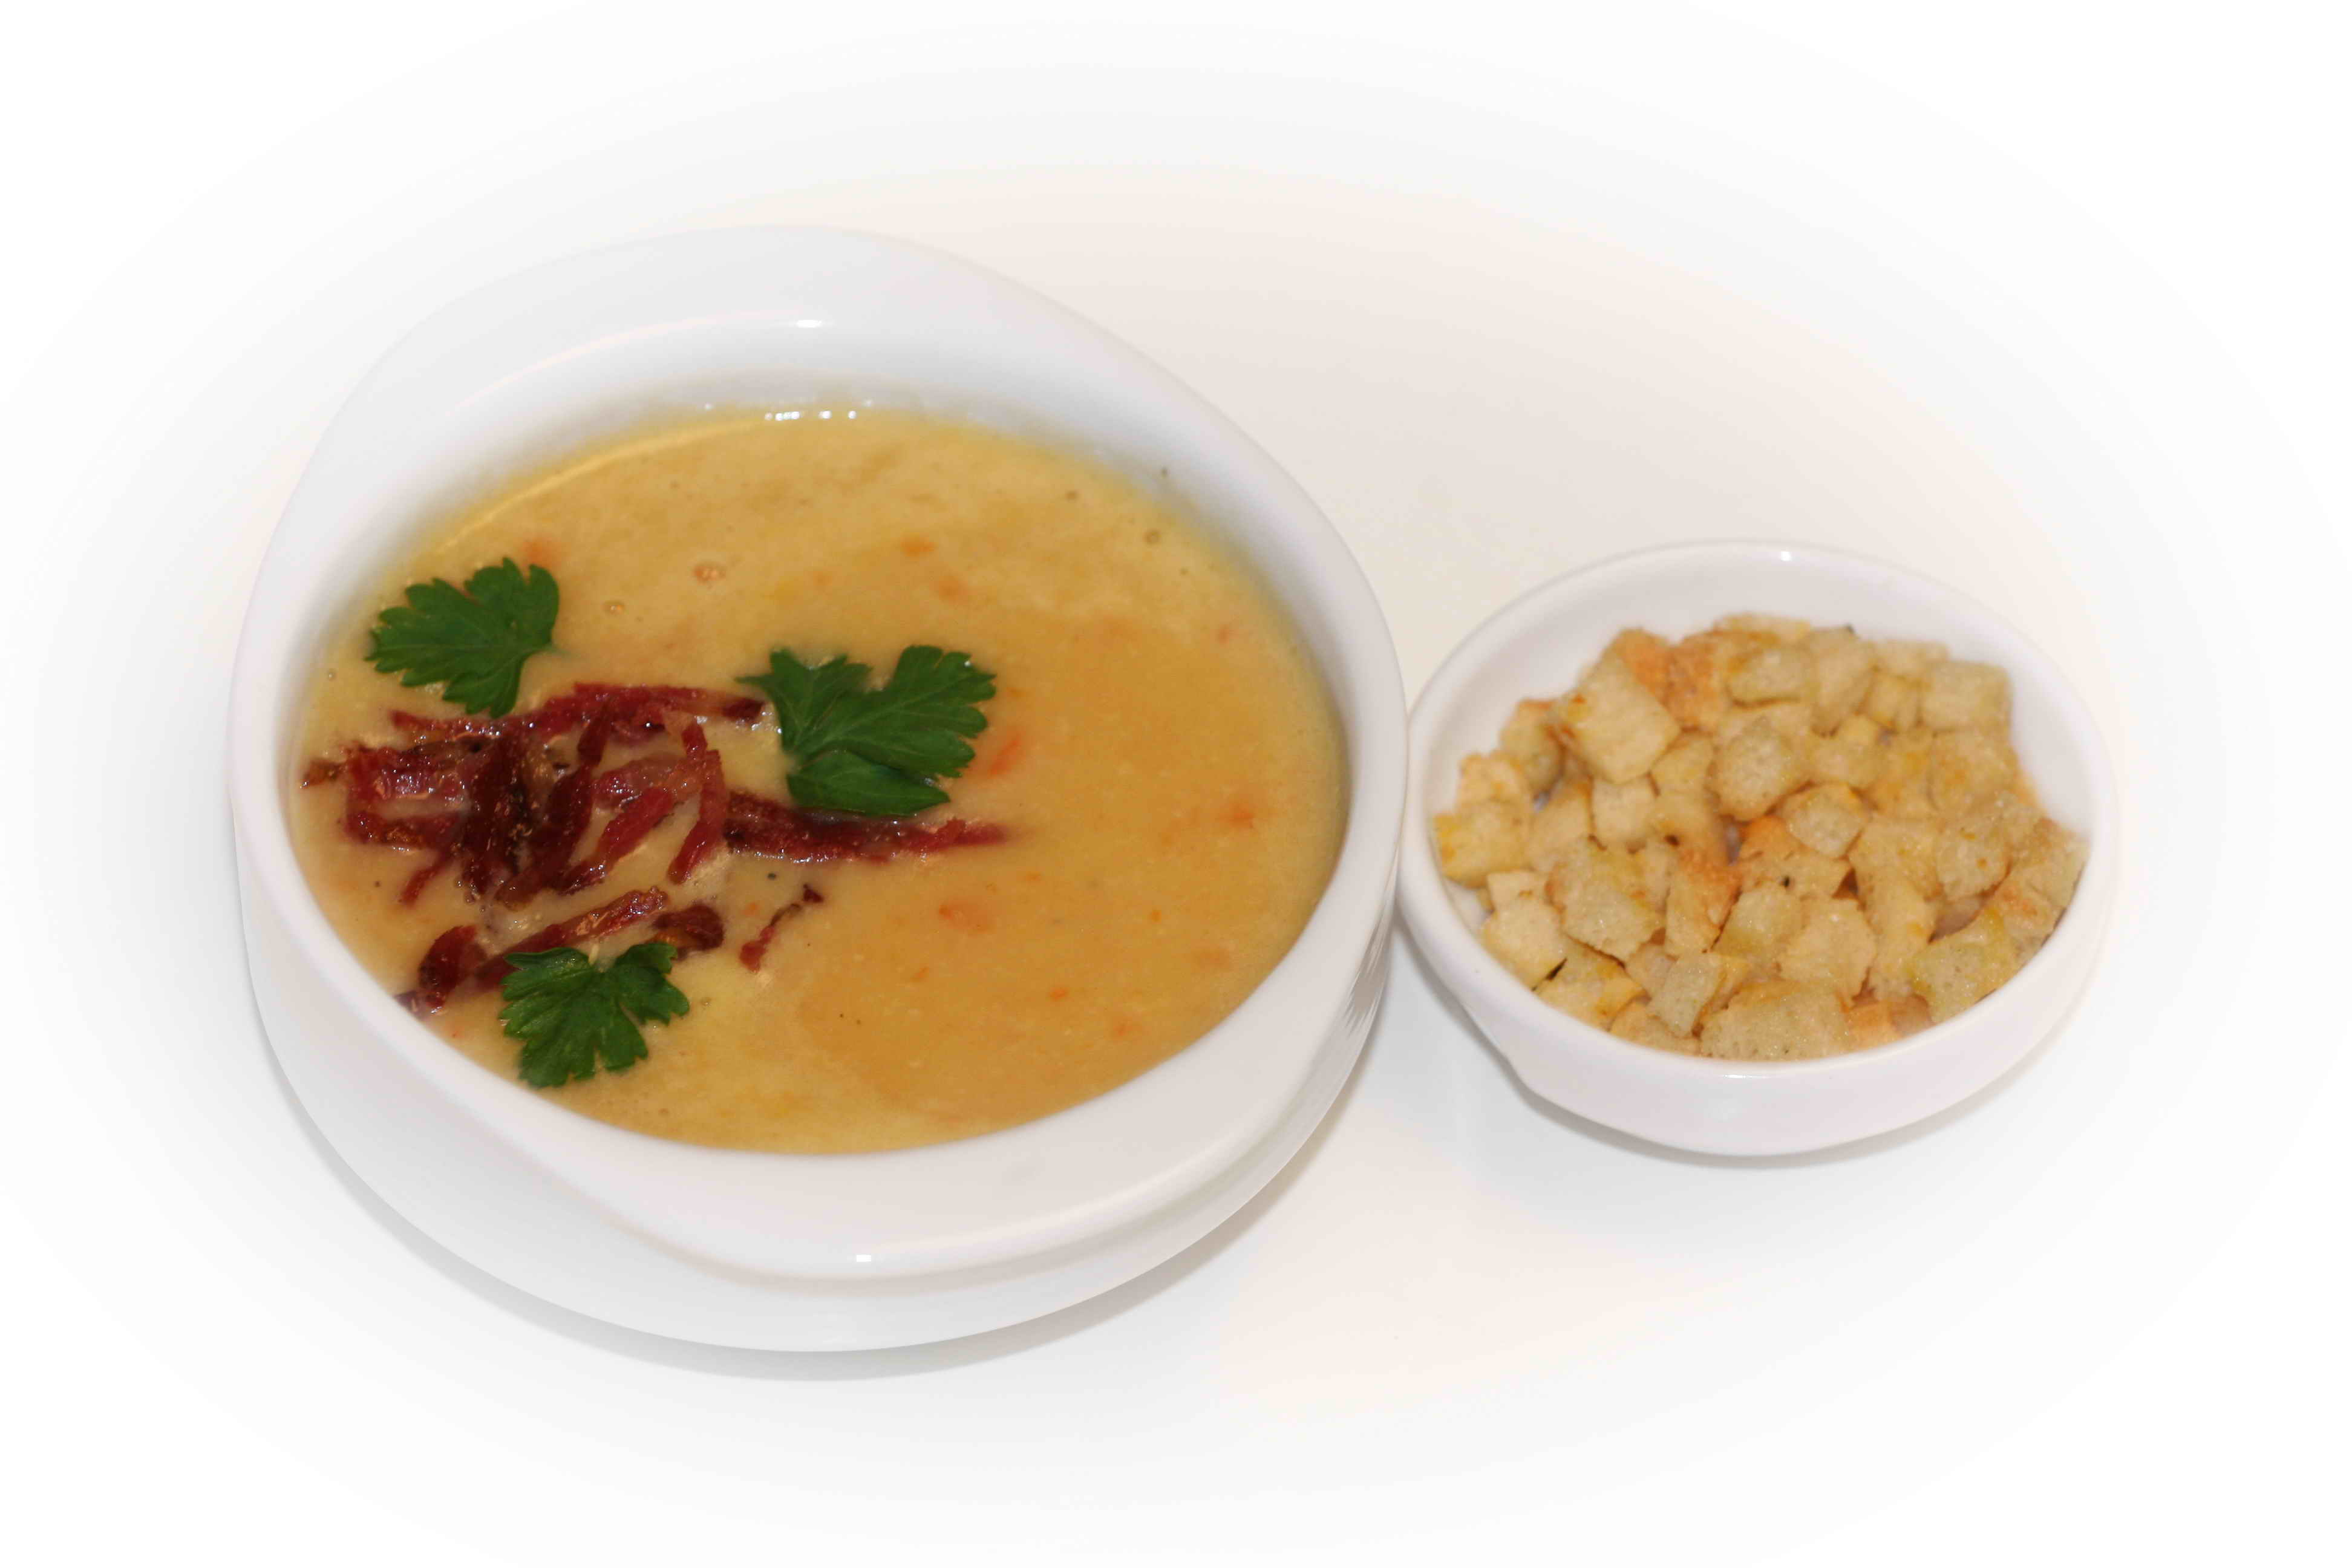 Pea soup with smoked meat products